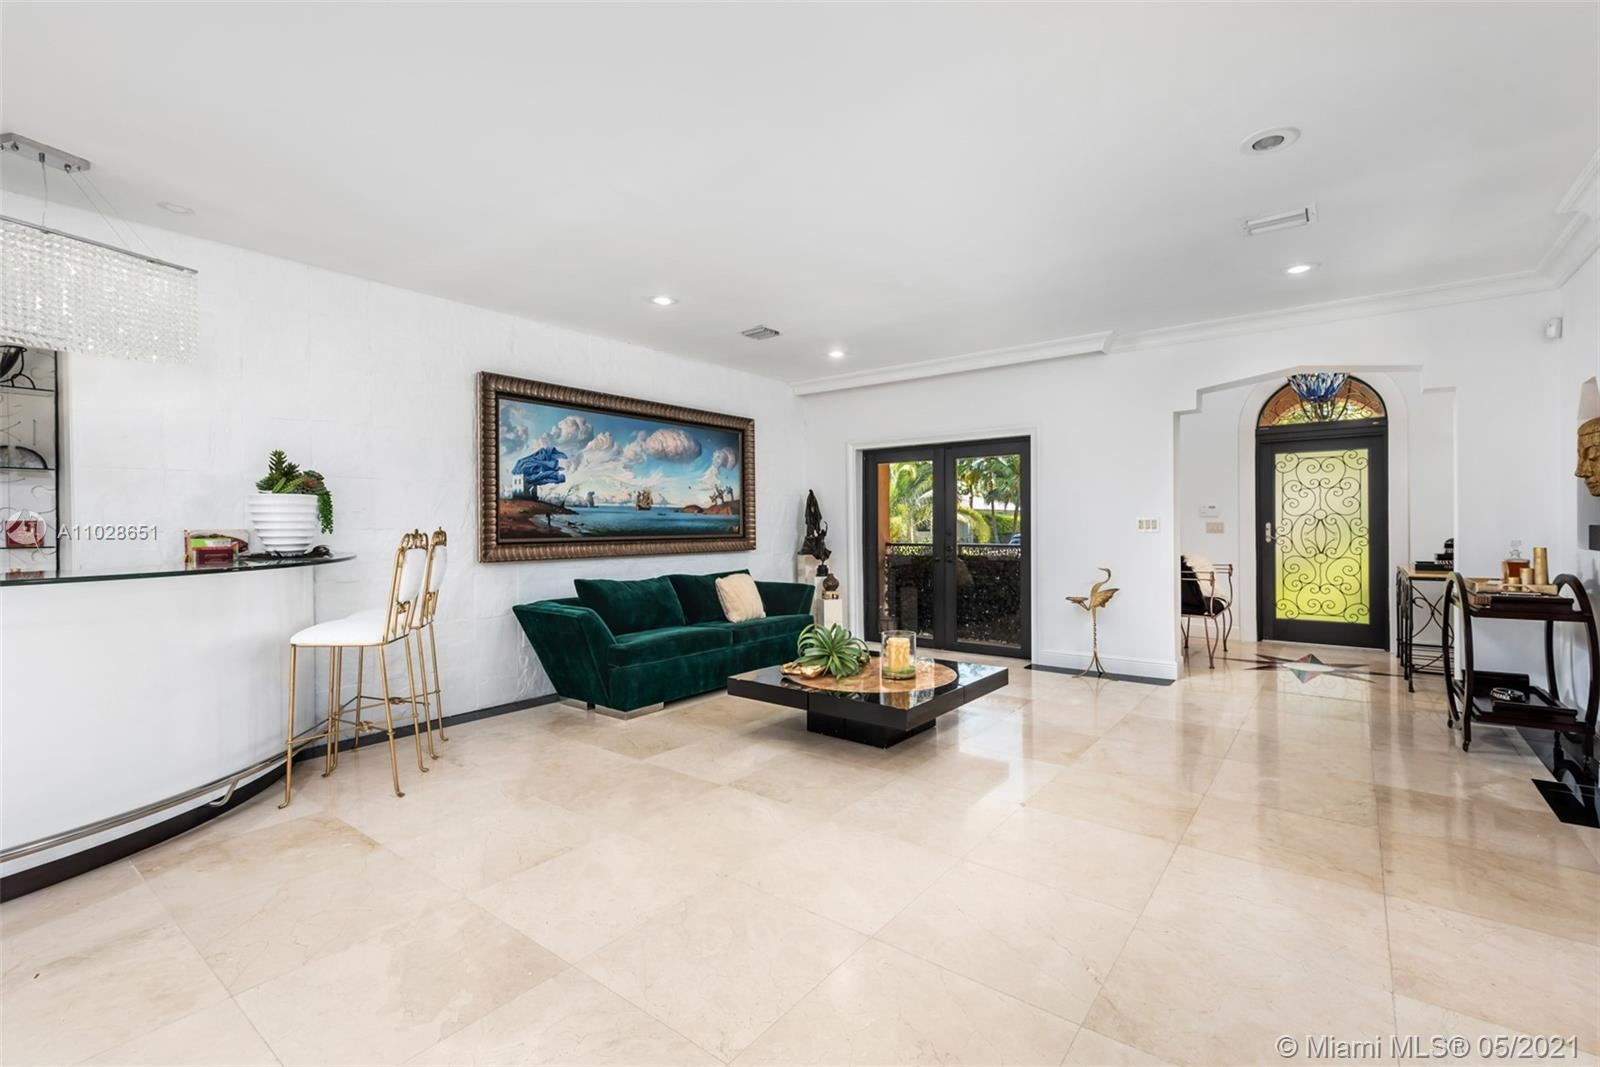 Photo of 1530 Consolata Ave, Coral Gables, FL 33146 (MLS # A11028651)